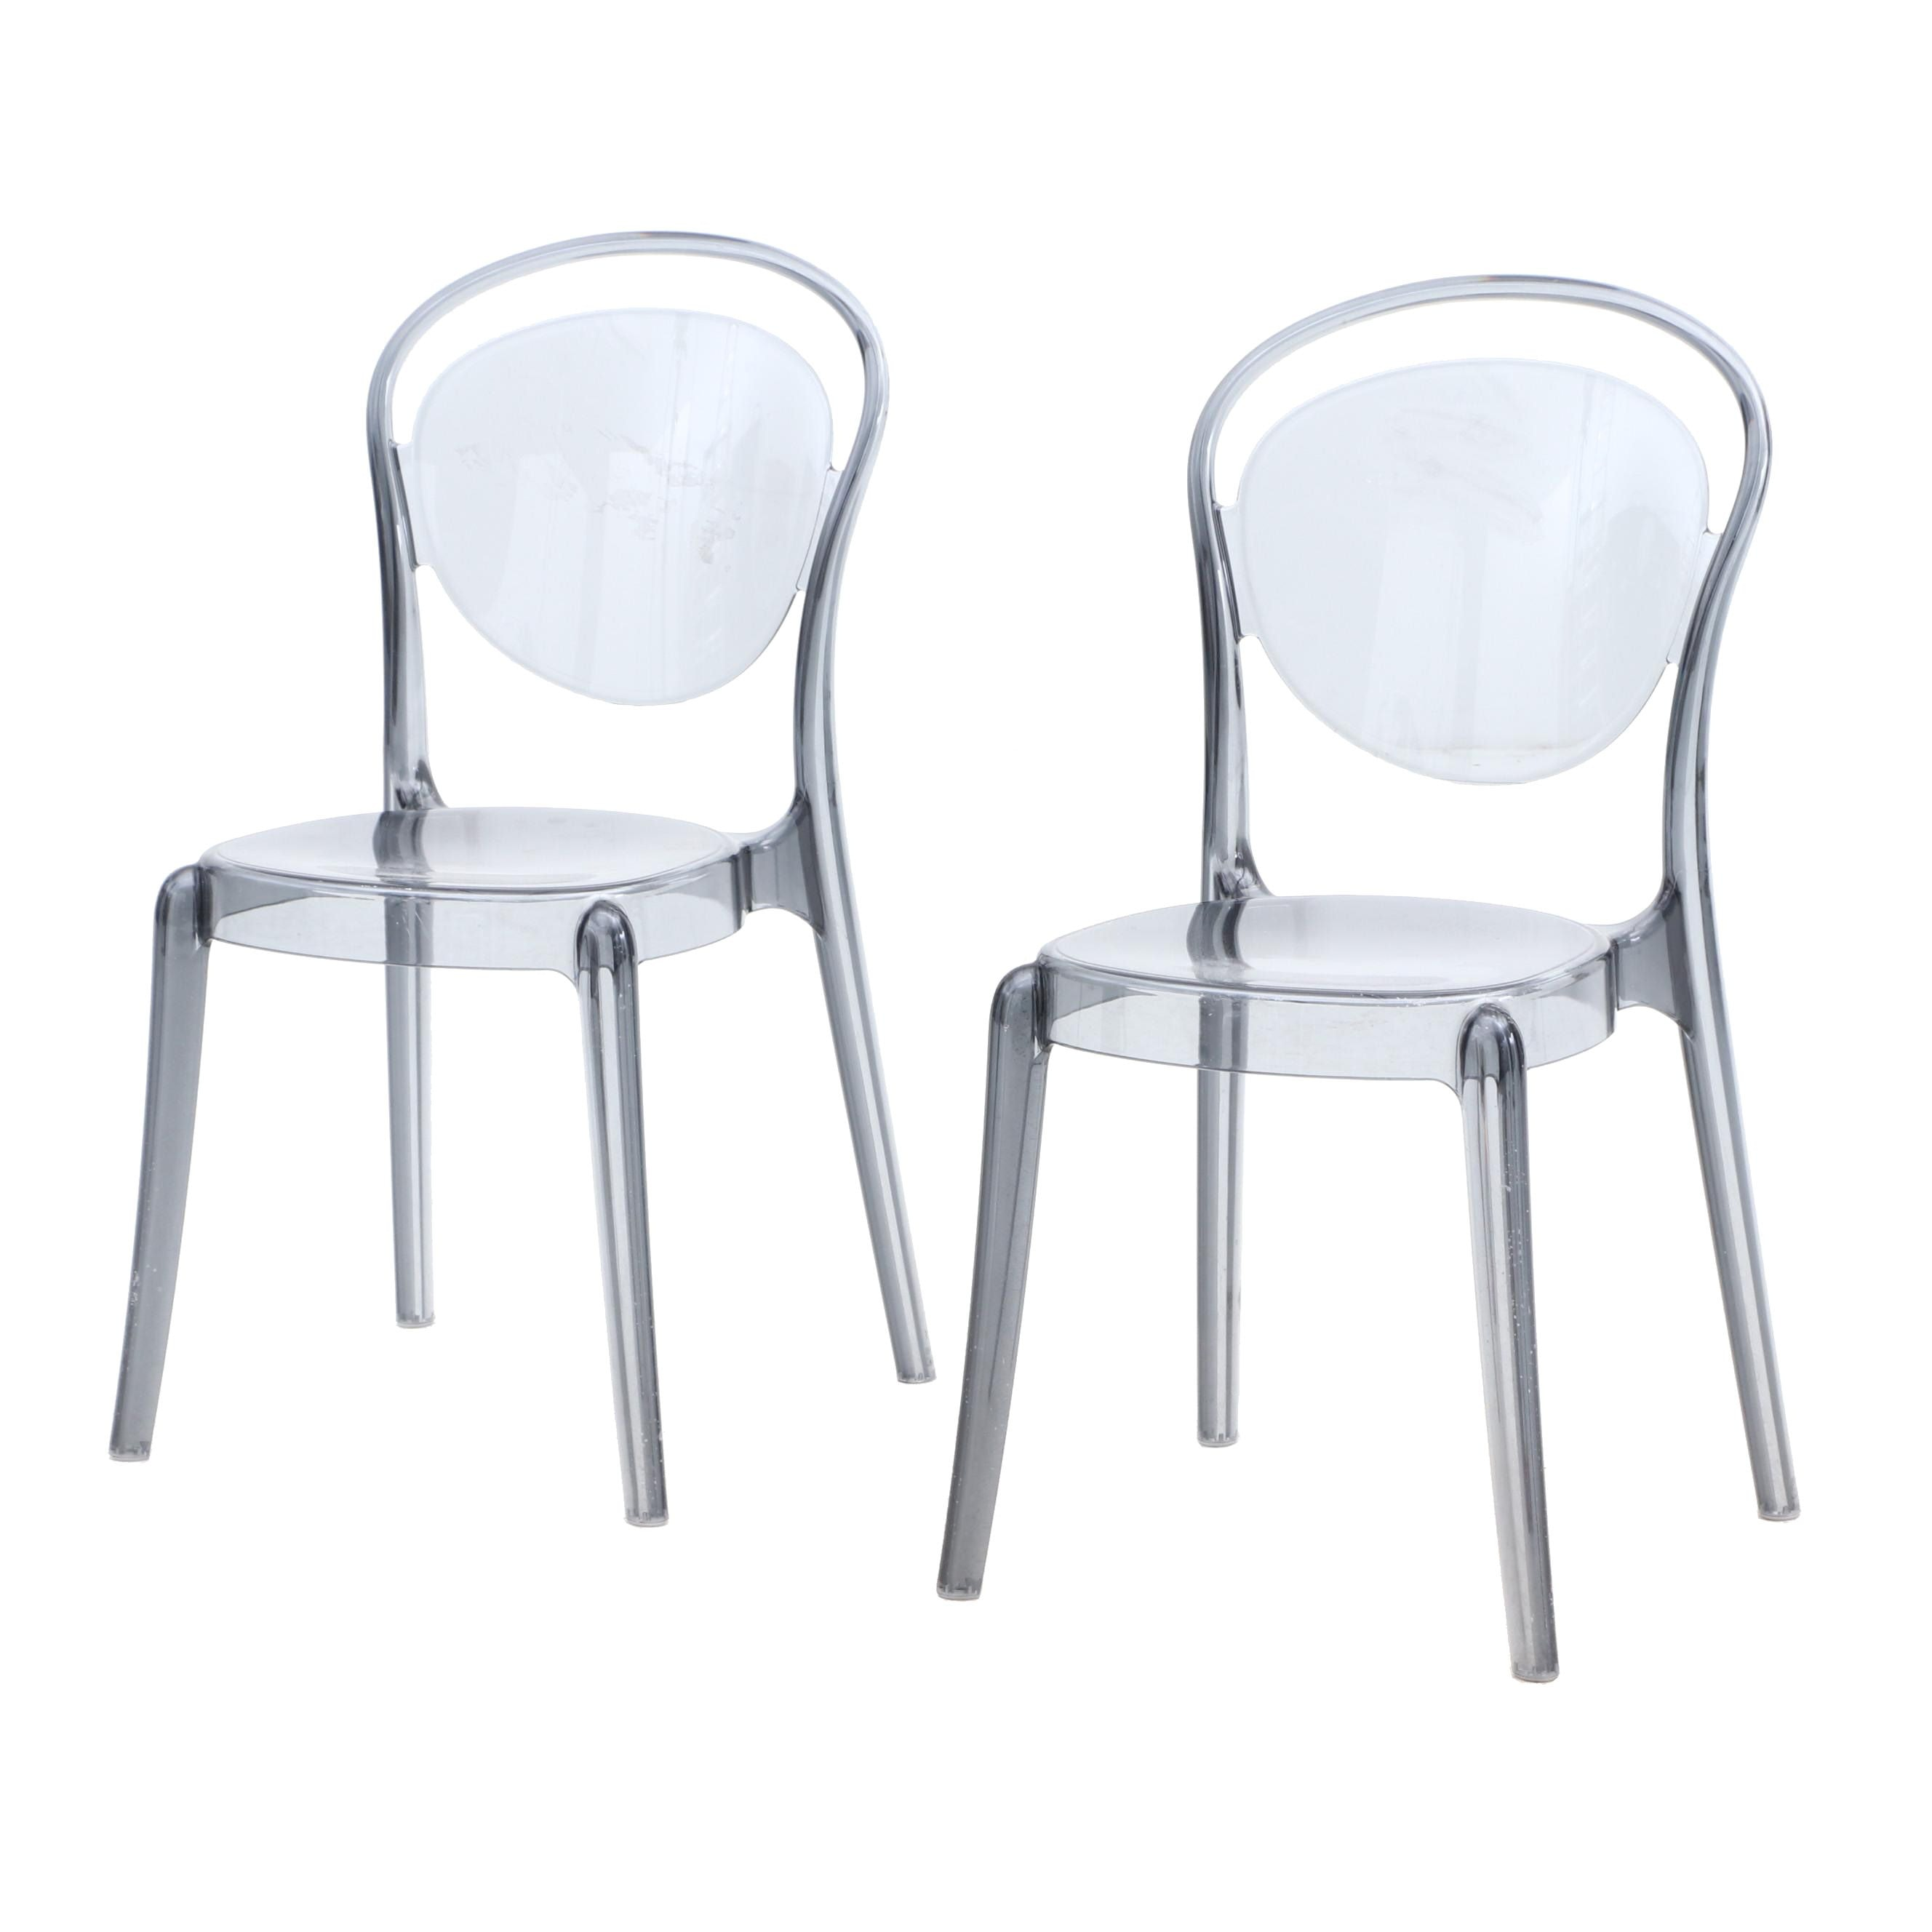 Calligaris Parisienne Style Acrylic Patio Dining Chair